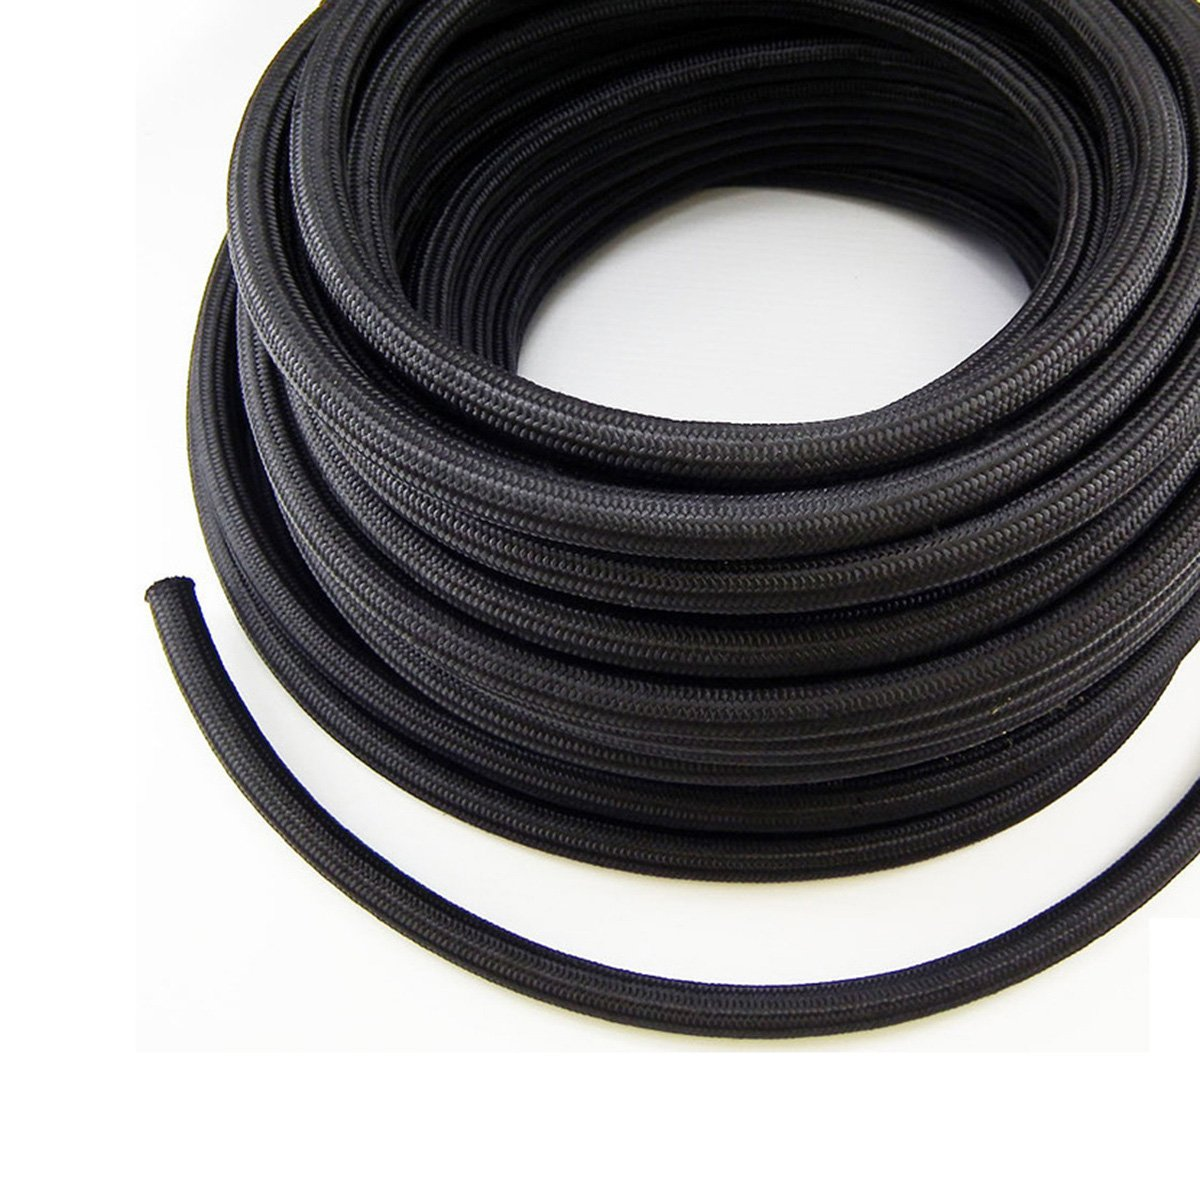 theBlueStone 20FT -6AN Nylon Braided Fuel Line Hose for 3/8'' Tube Size